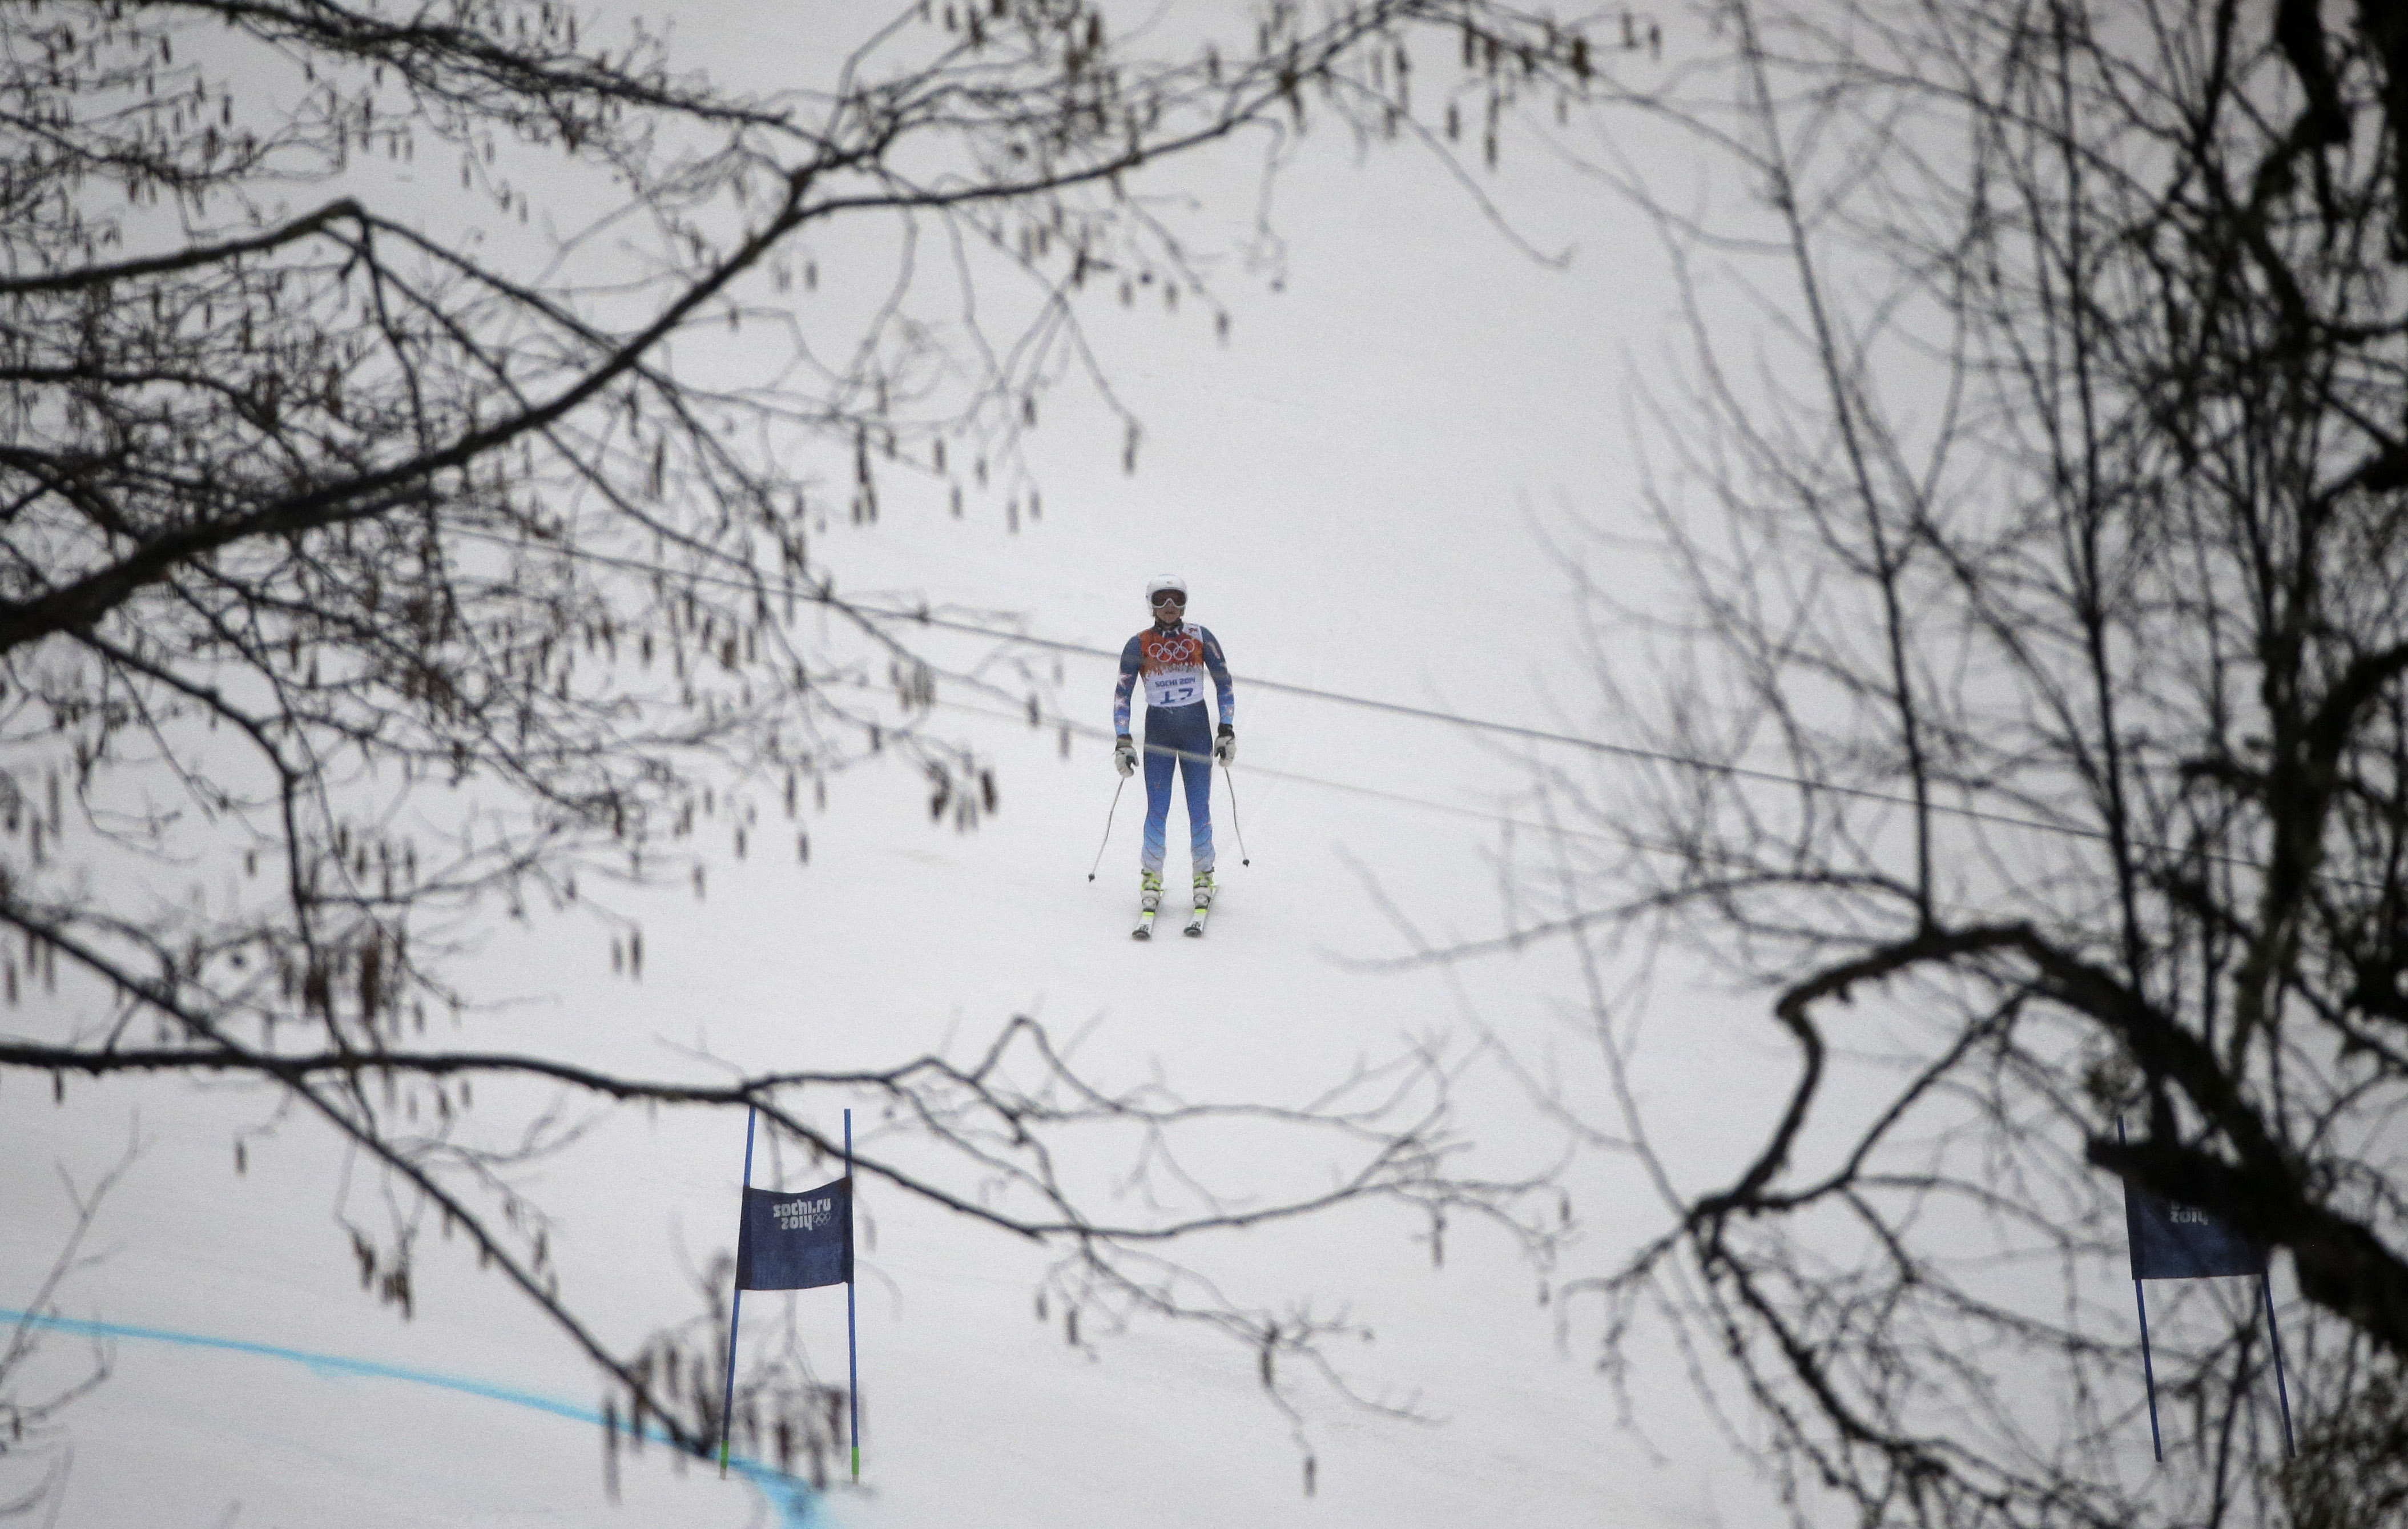 United States' Julia Mancuso pauses on the course after skiing out of the first run of the women's giant slalom at the Sochi 2014 Winter Olympics, Tuesday, Feb. 18, 2014, in Krasnaya Polyana, Russia. (AP Photo/Gero Breloer)